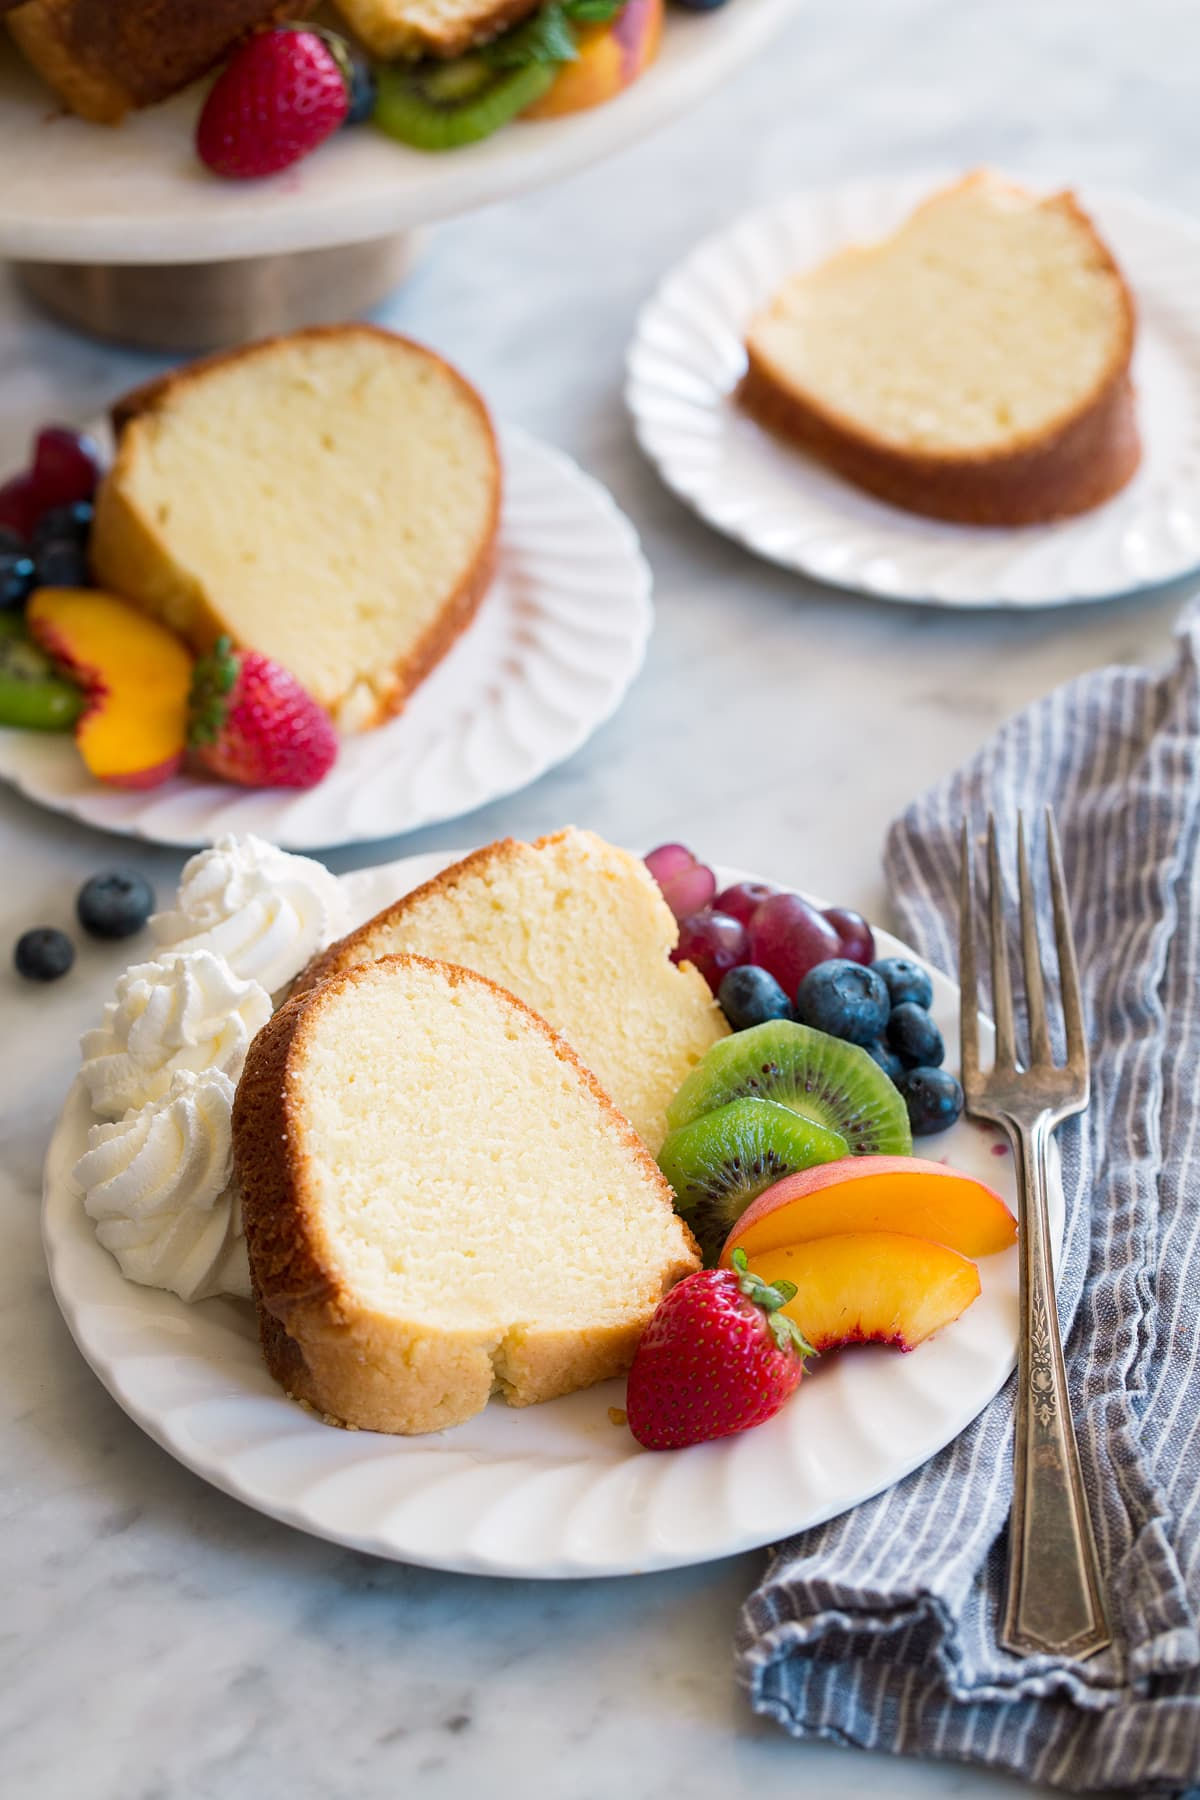 Three white dessert plates with slices of homemade pound cake.